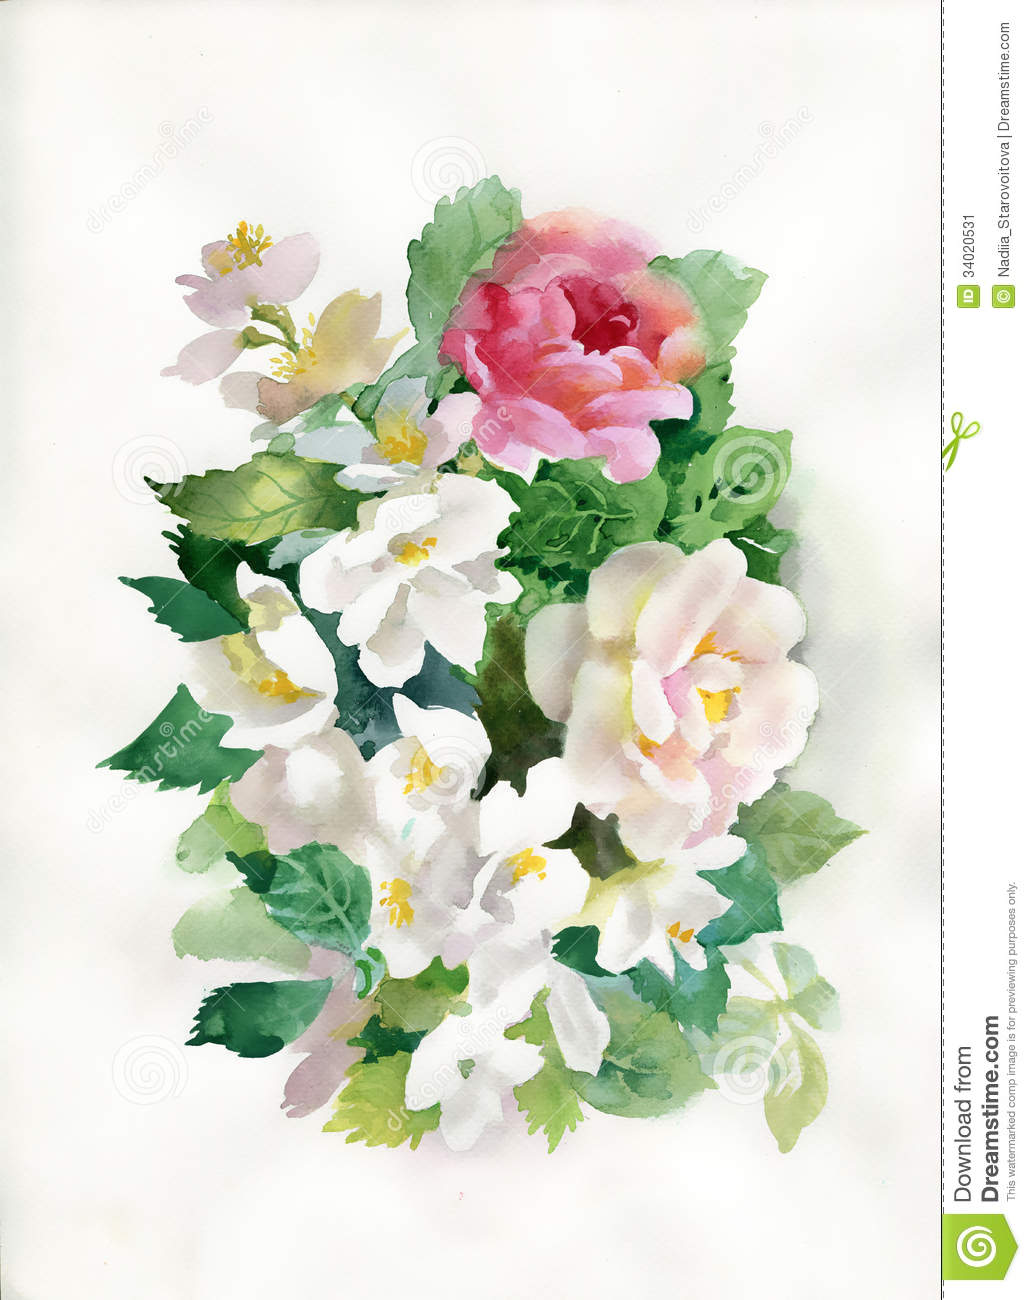 Watercolor Roses Bouquet Stock Image - Image: 34020531